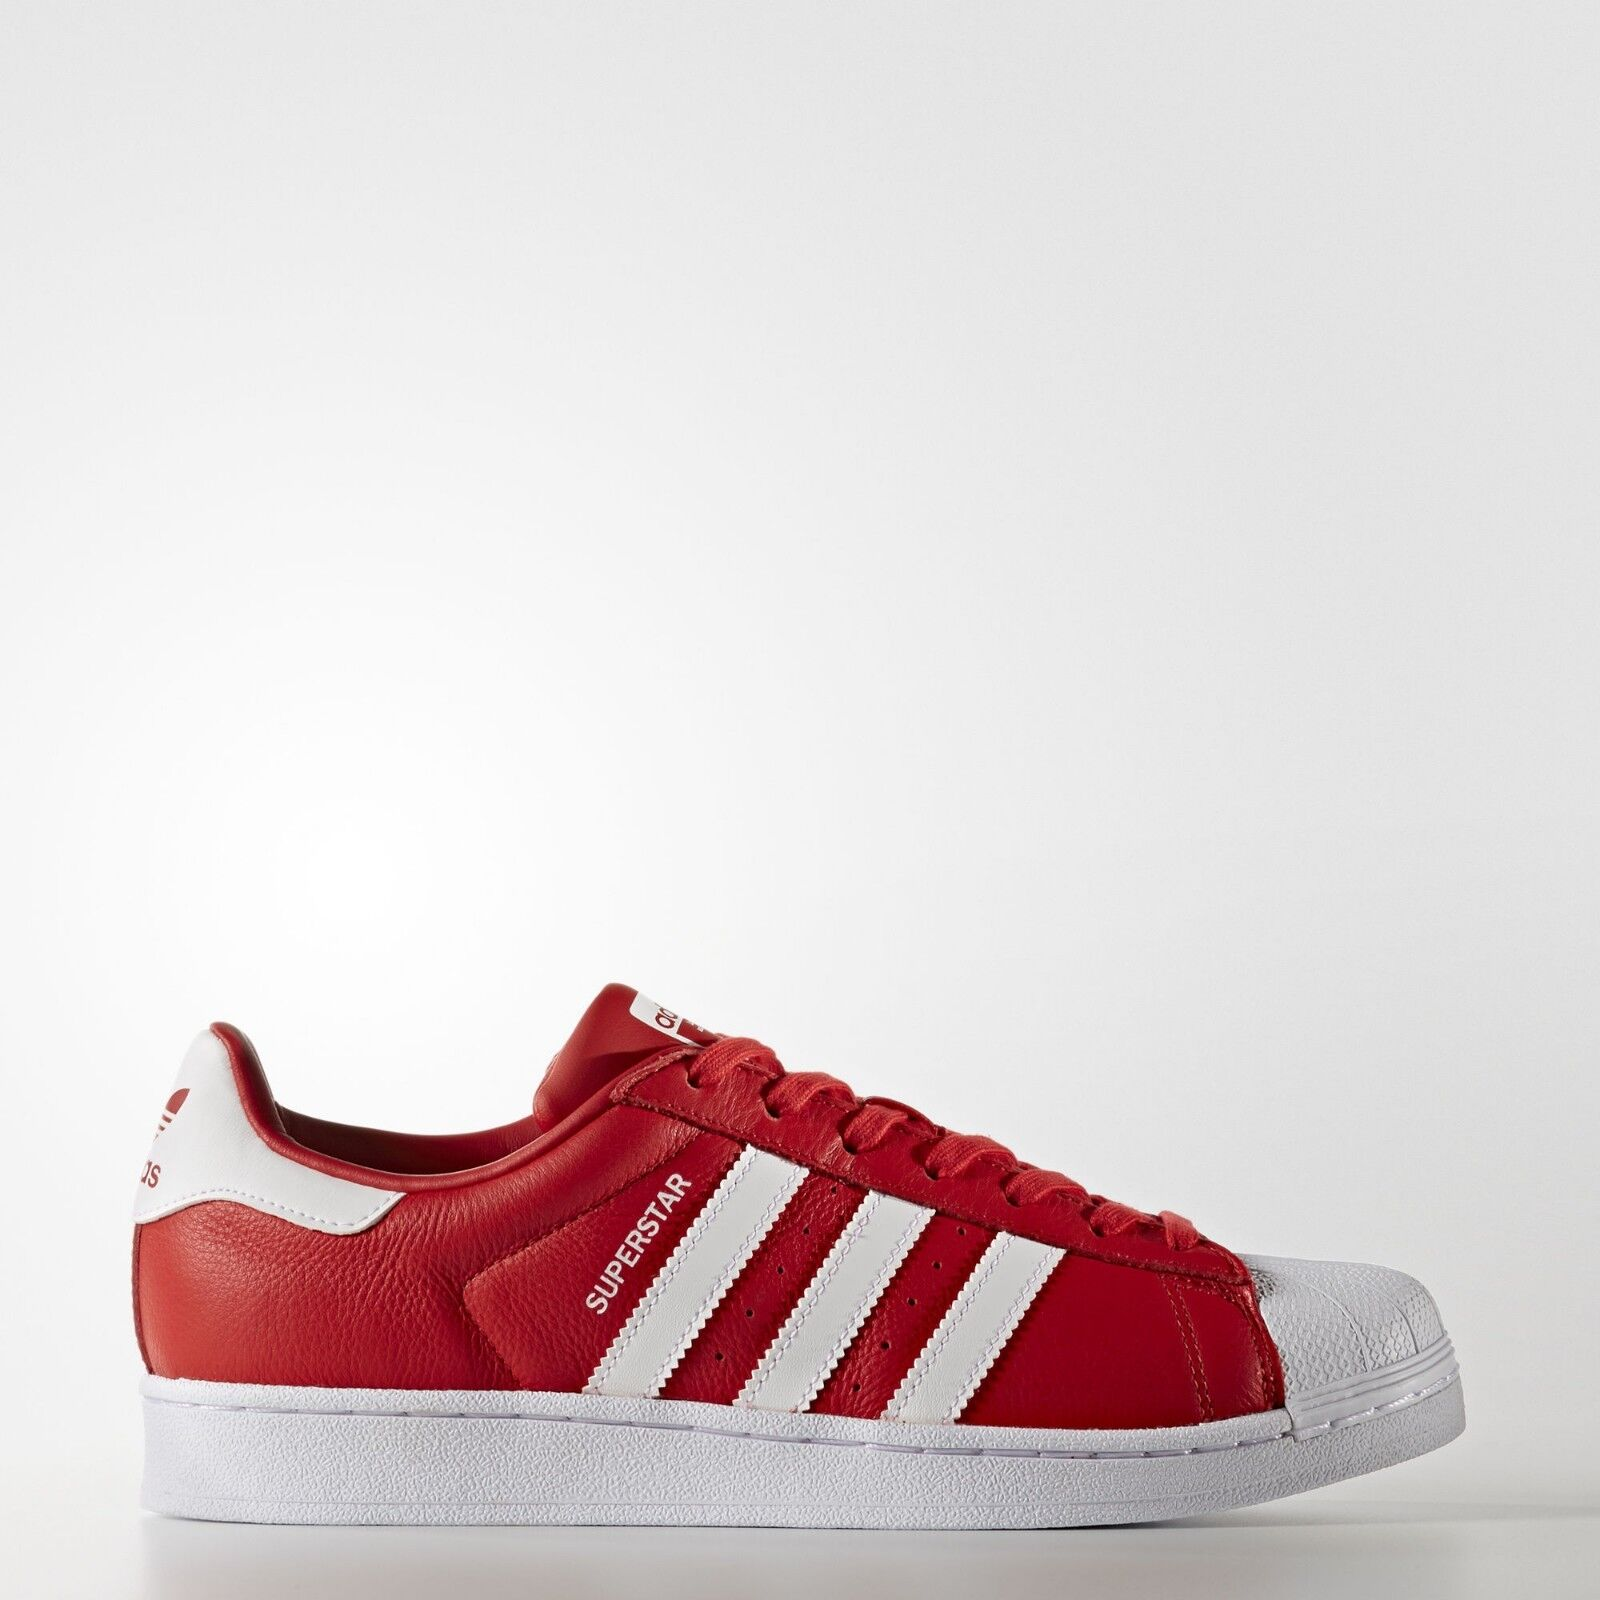 size 40 ed739 a647e NEW* MEN'S ADIDAS SUPERSTAR FOUNDATION SHOES RED WHITE RED SHELL TOE BB2240